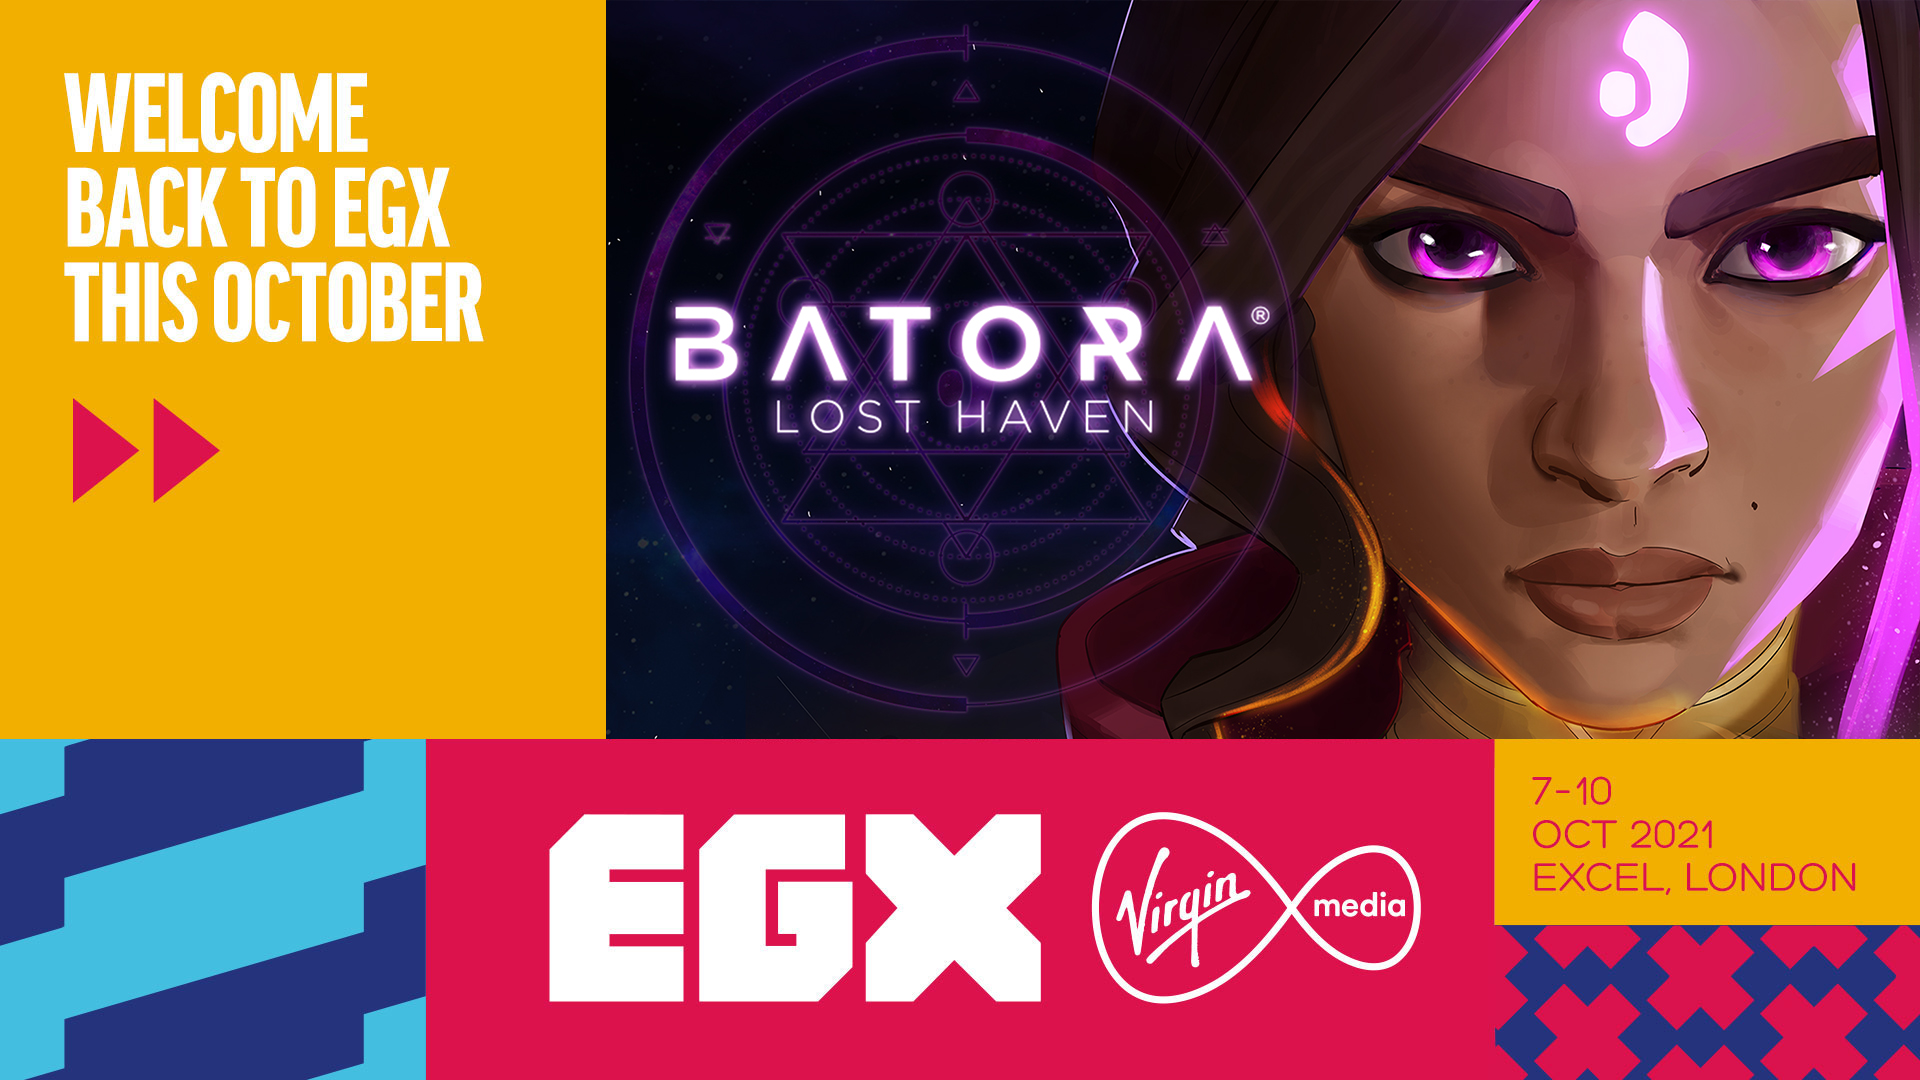 Play the demo of Batora: Lost Haven at EGX!